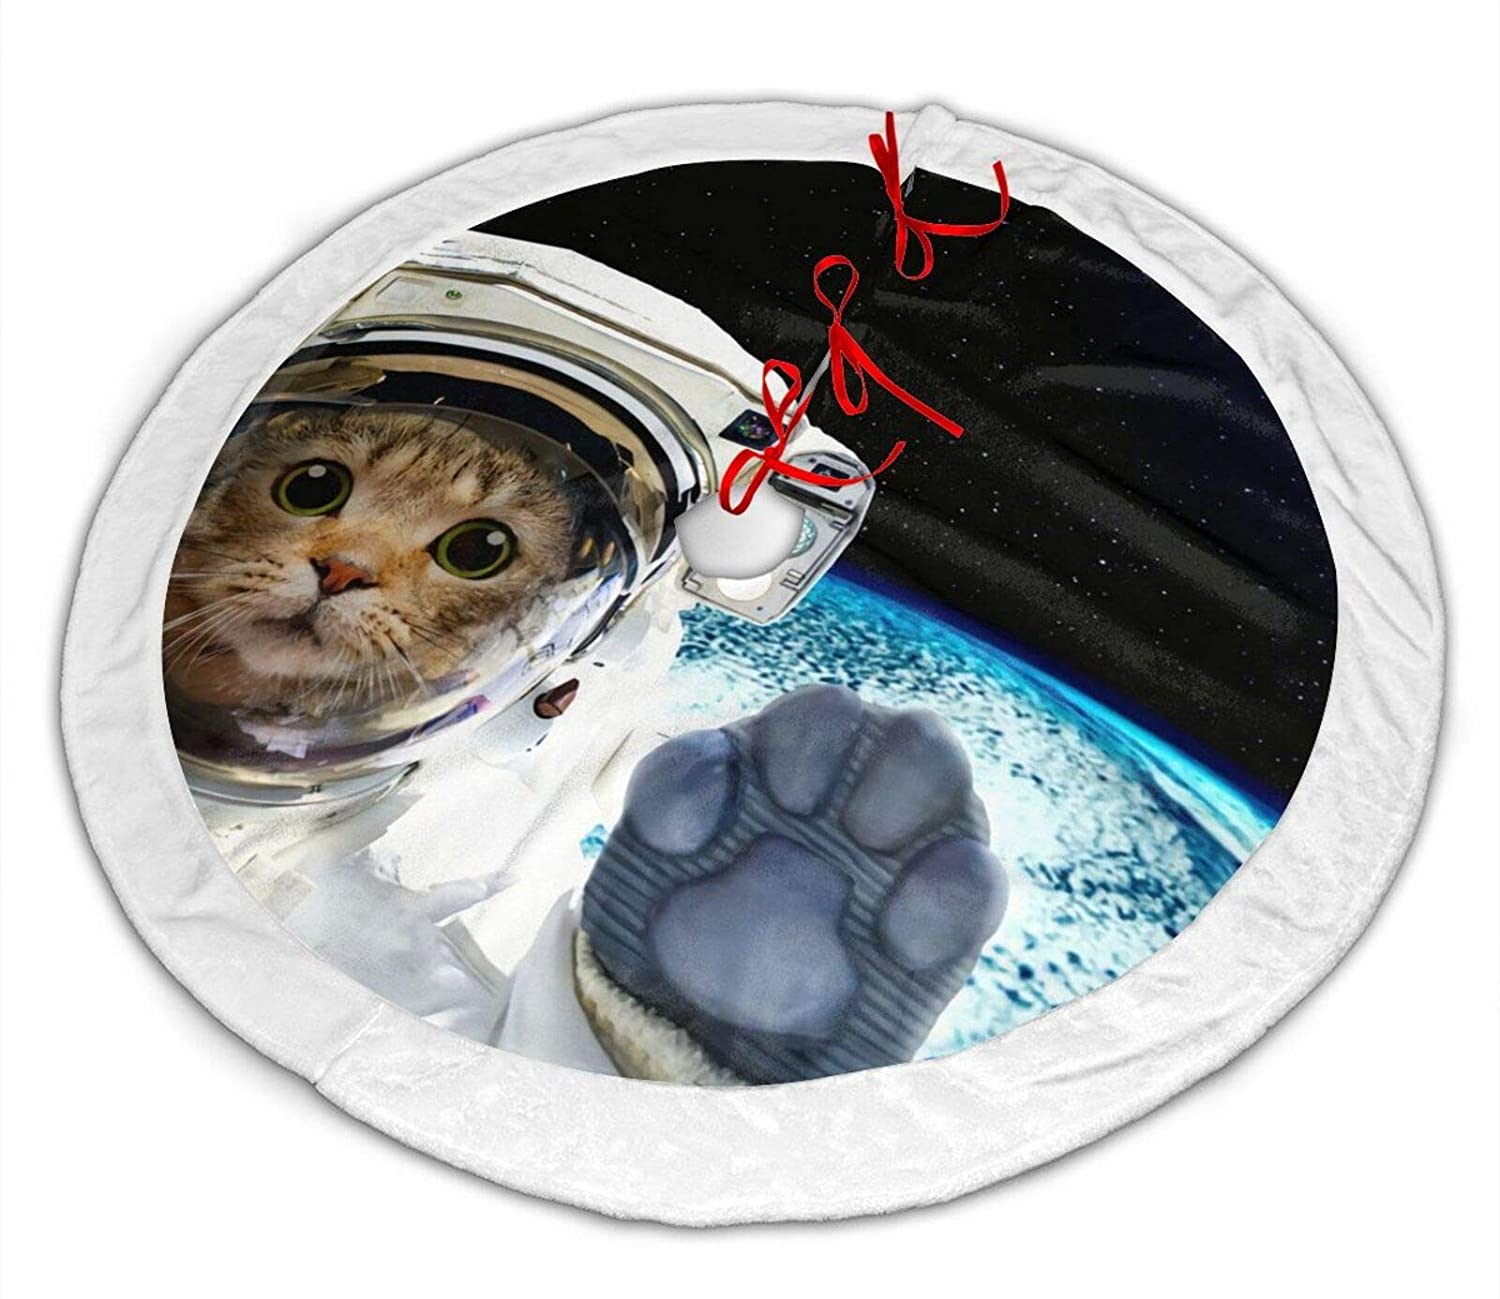 antcreptson Cat Galaxy Planet Universe Space Star Christmas Tree Skirt, 36 inch Christmas Tree Decorations for Farmhouse Party